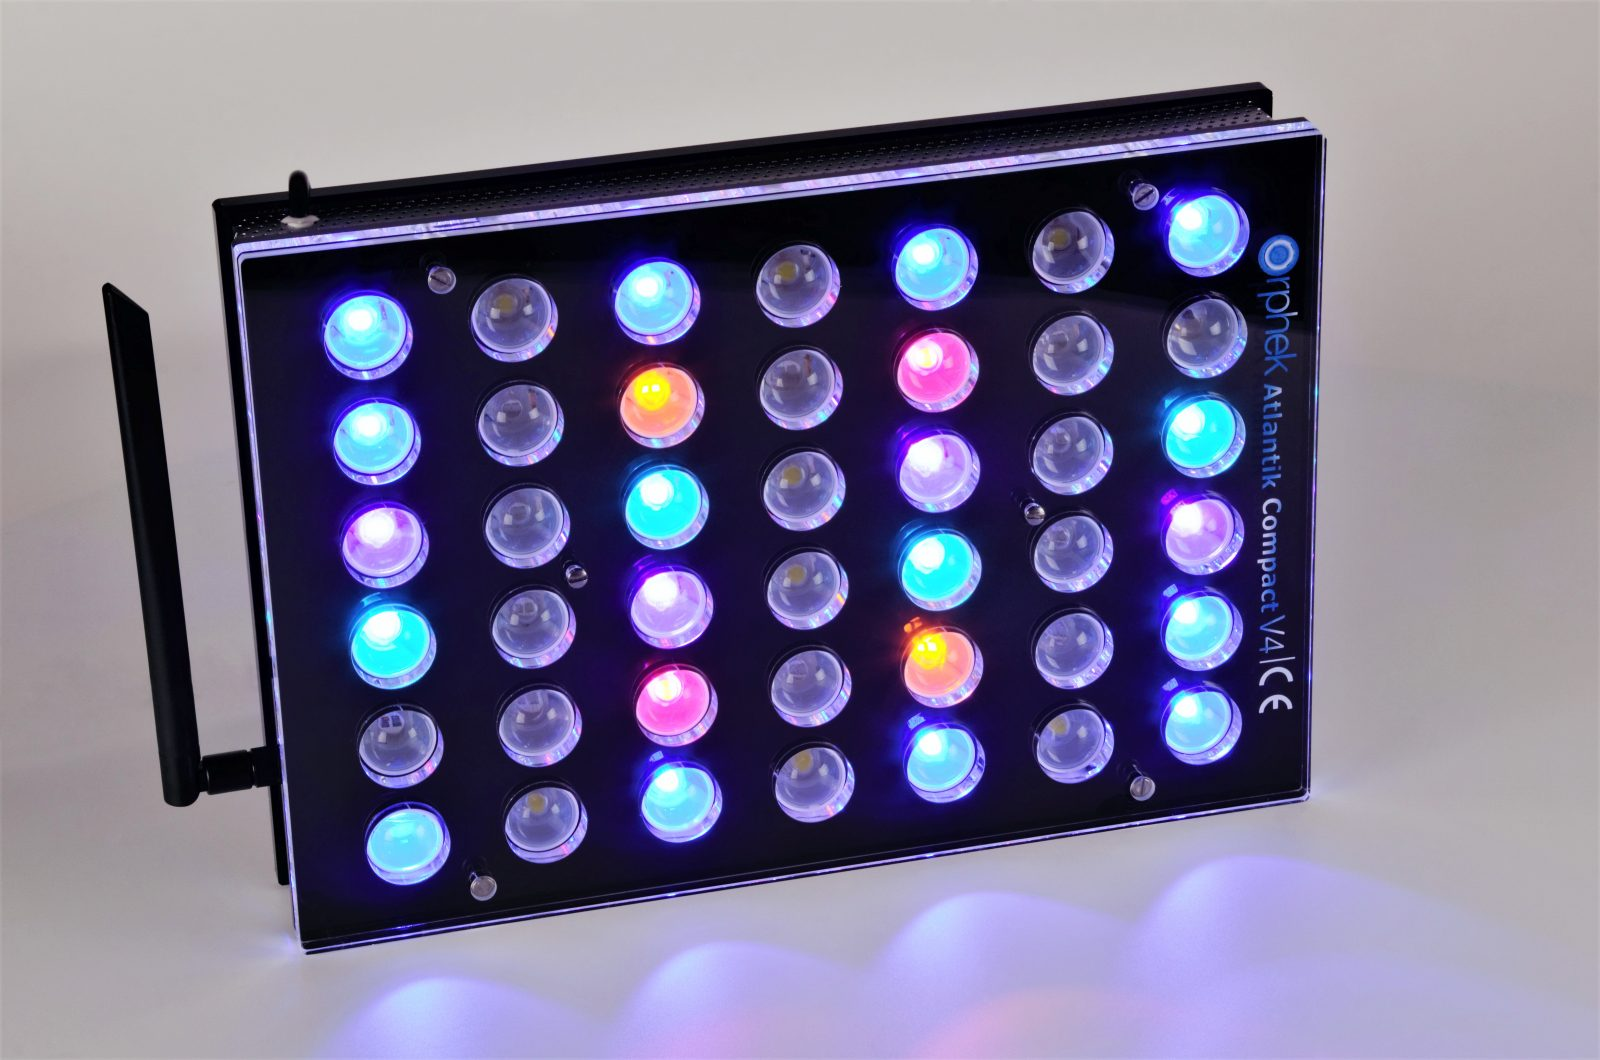 Orphek-Aquarium-LED-Lighting-Atlantik -Compact-V4-lys -kanalen 2 + 4